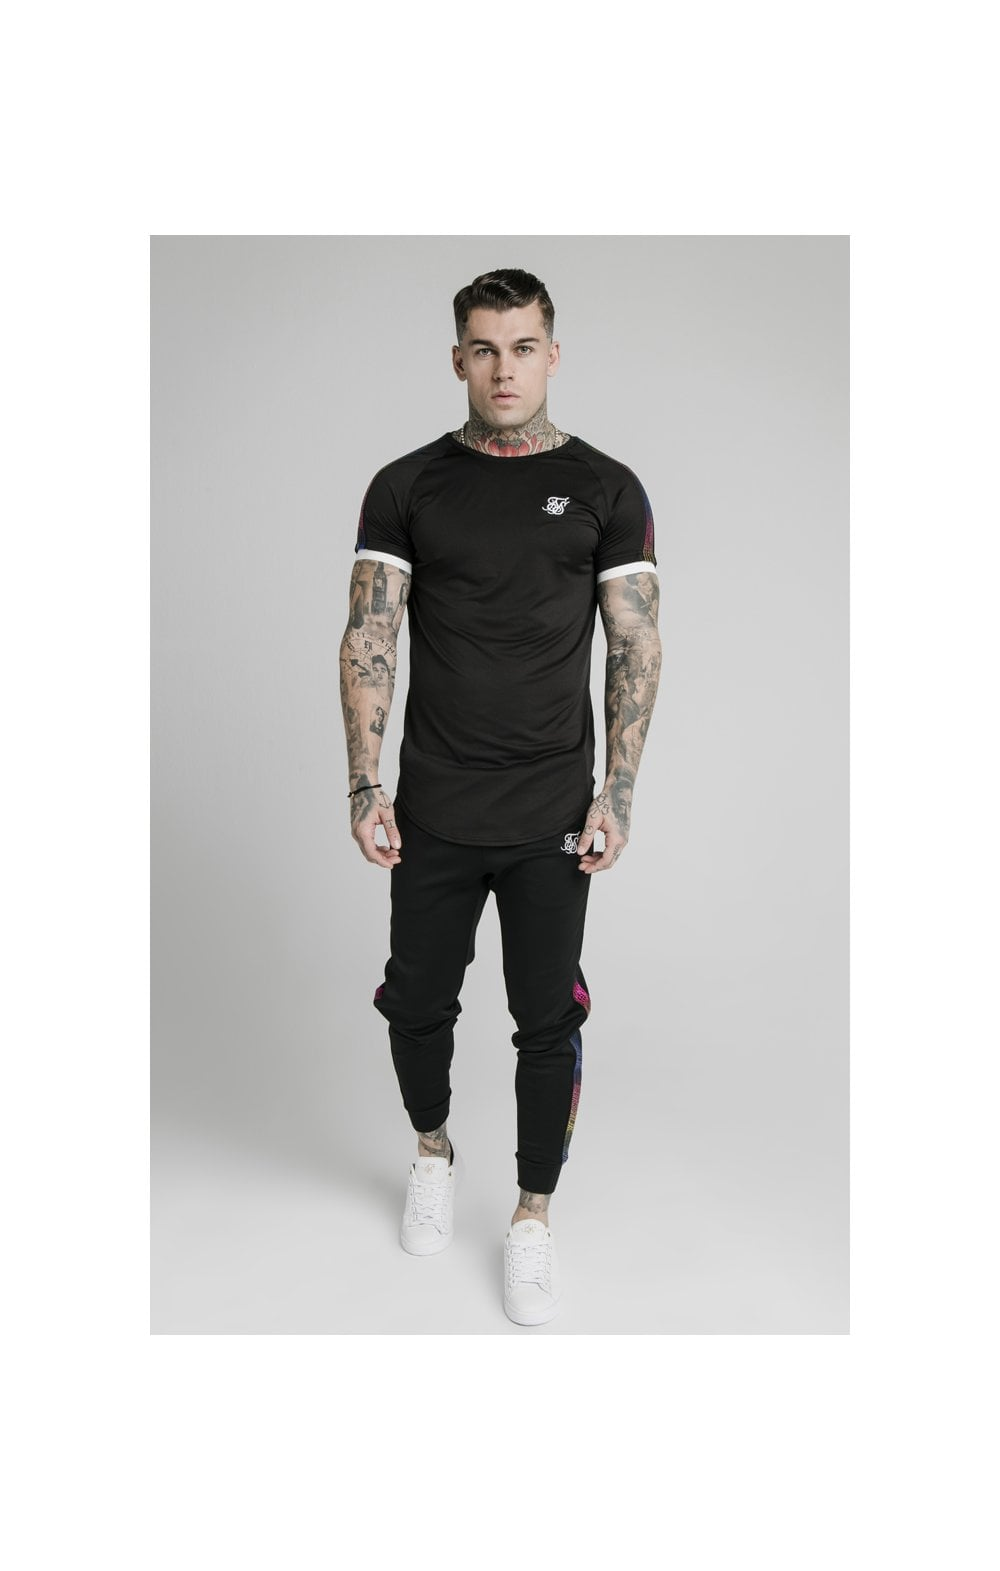 Load image into Gallery viewer, SikSilk S/S Fade Runner Tech Tee - Black (3)